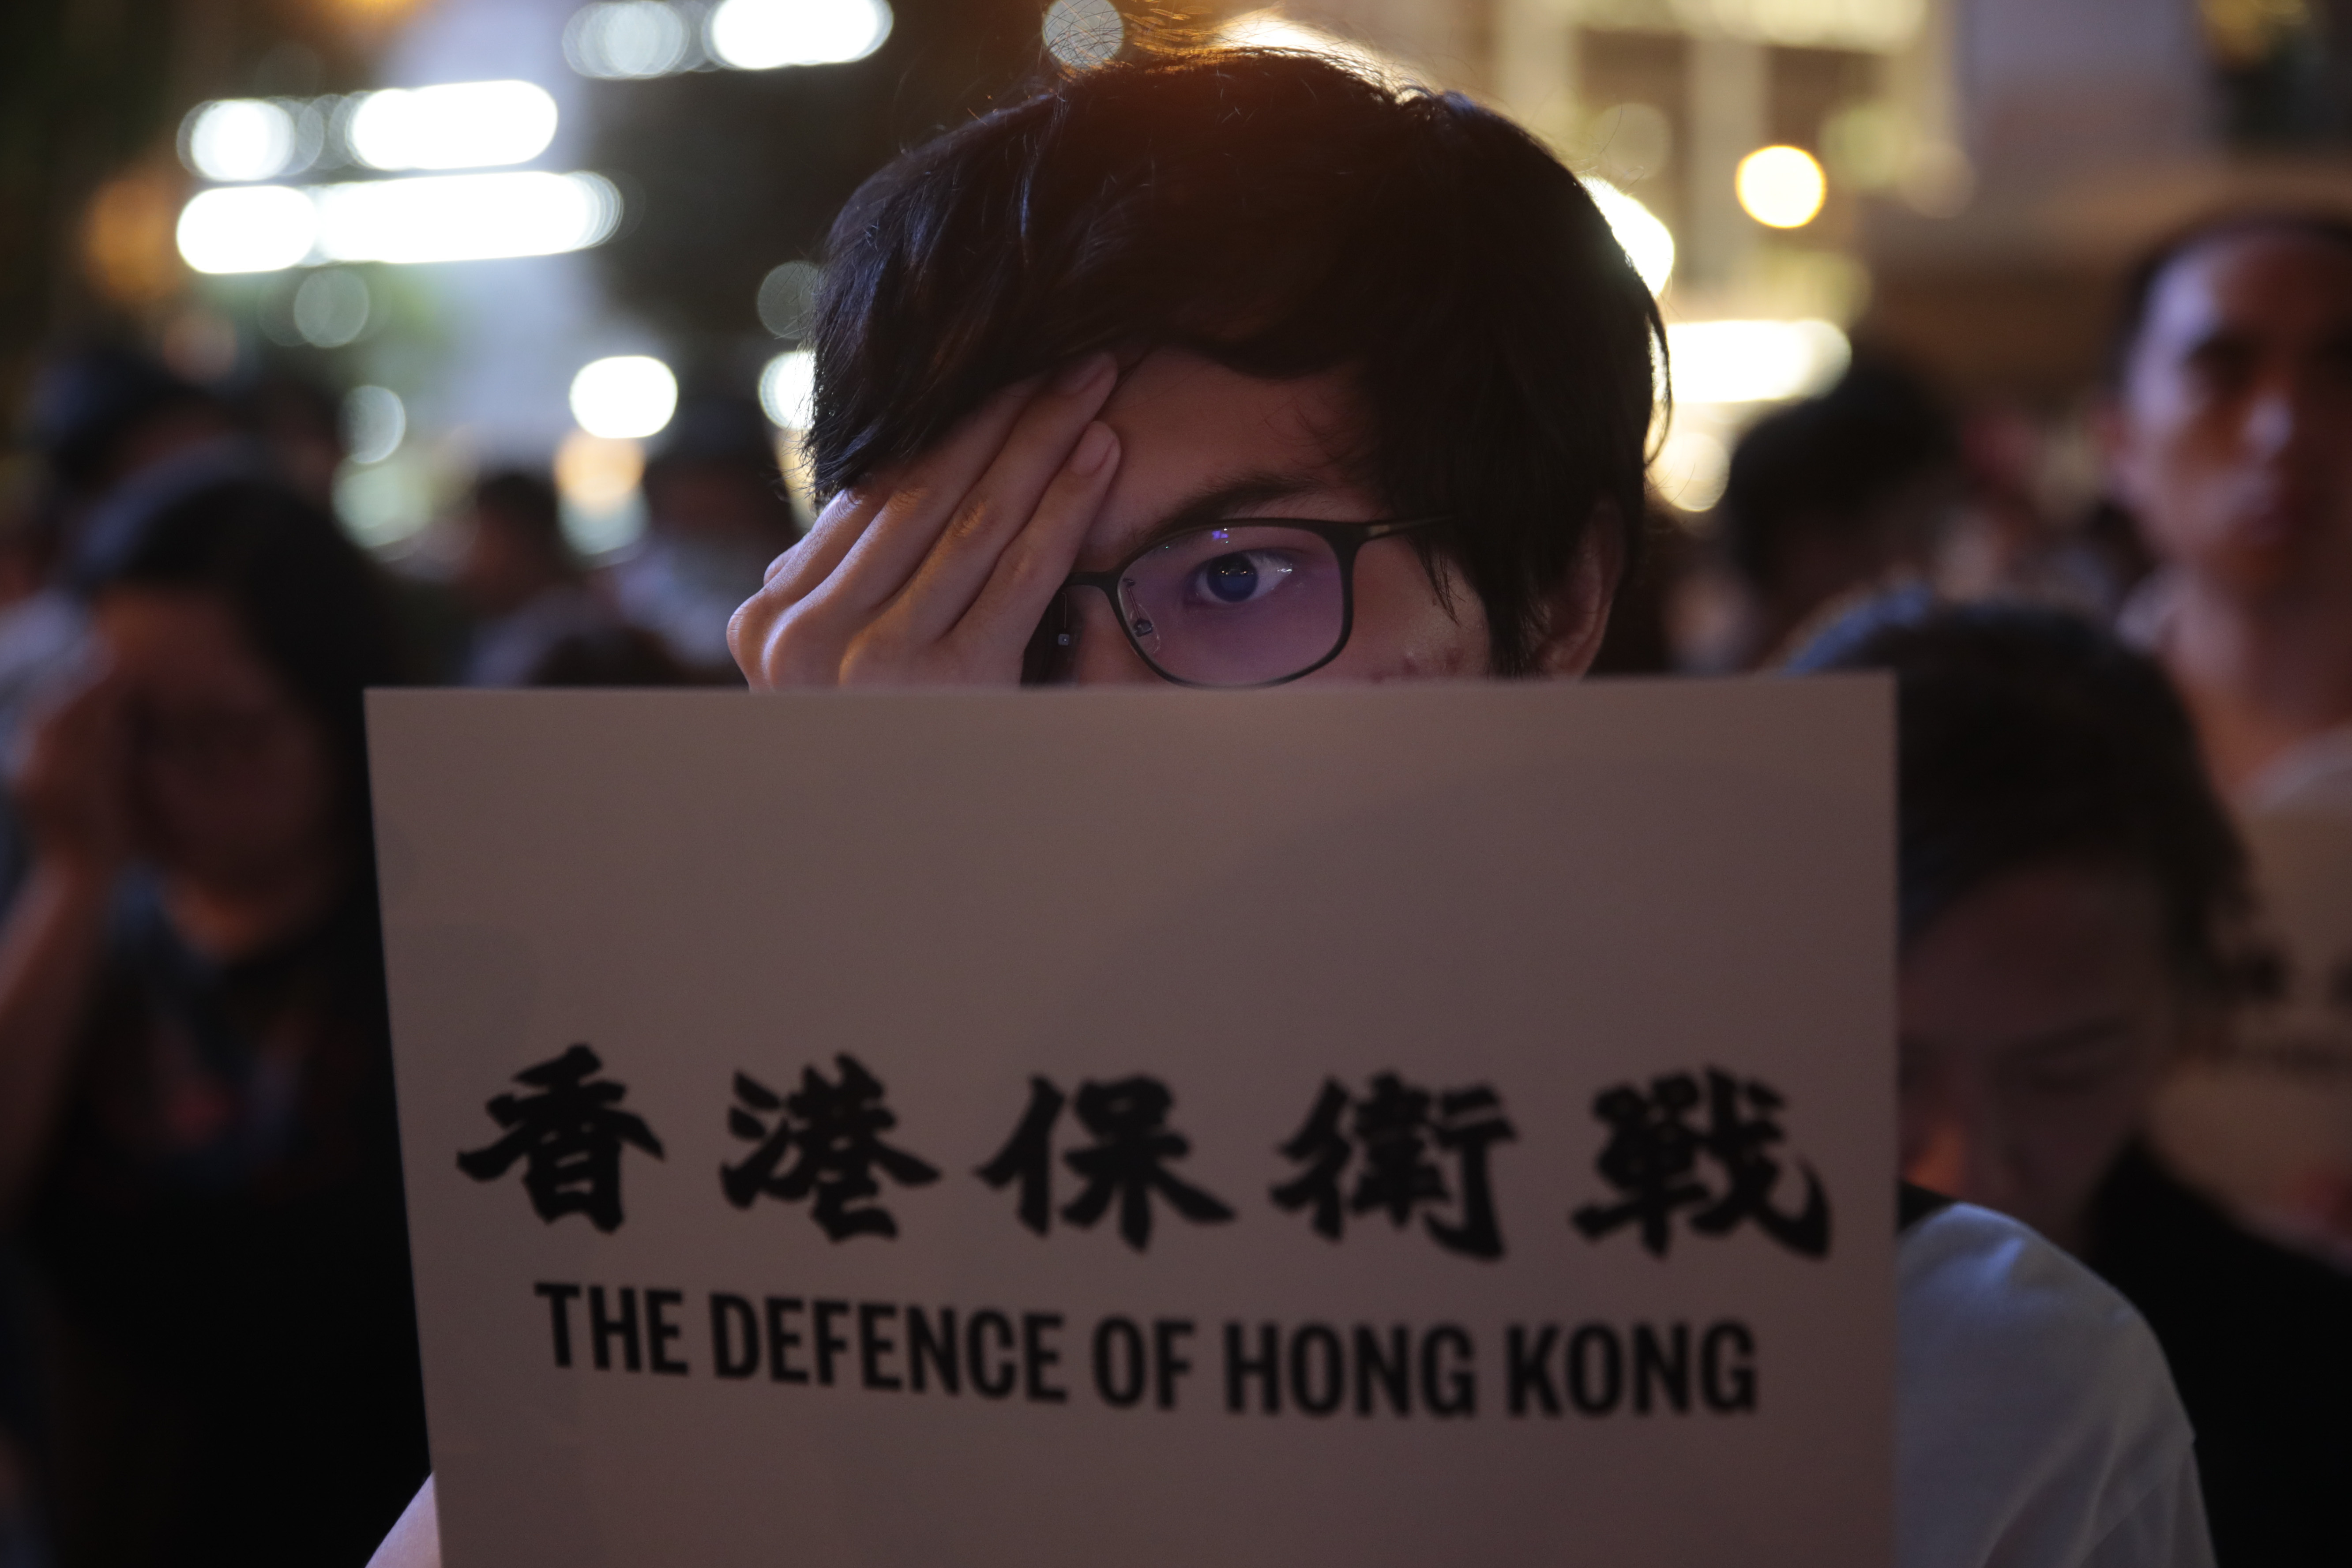 Hong Kong activists freed on bail, protest march banned